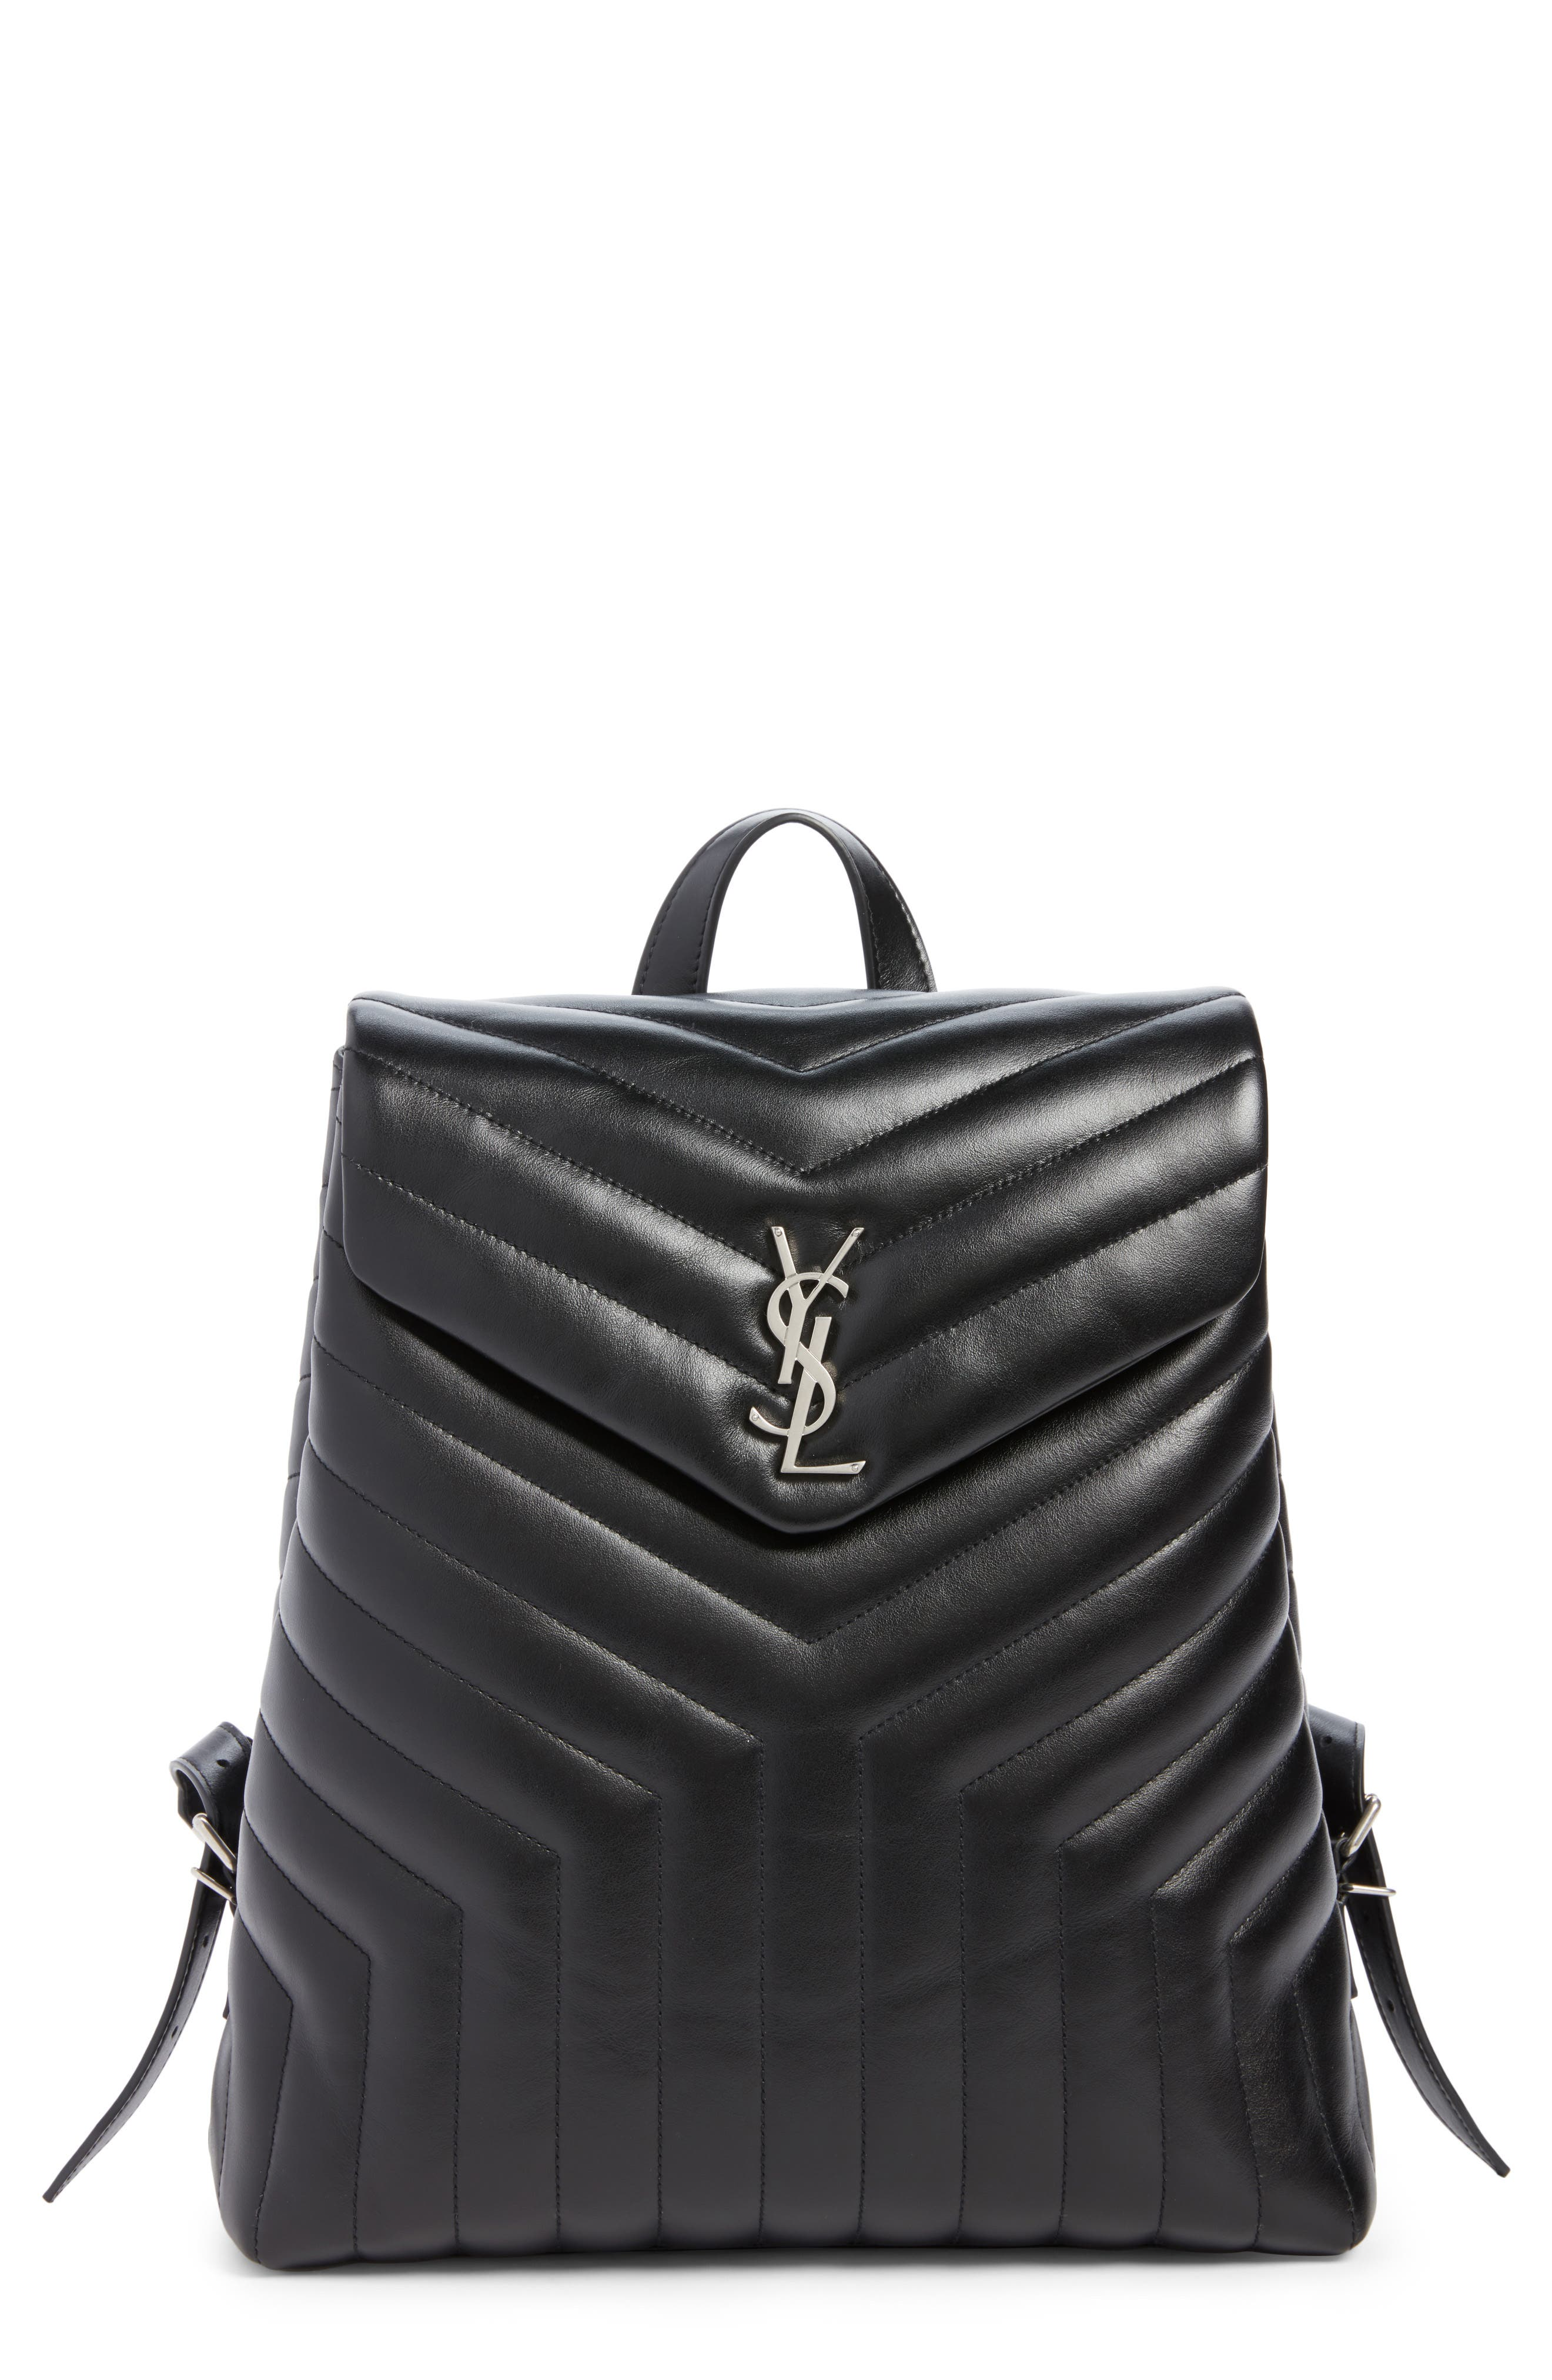 Saint Laurent Medium LouLou Calfskin Leather Backpack